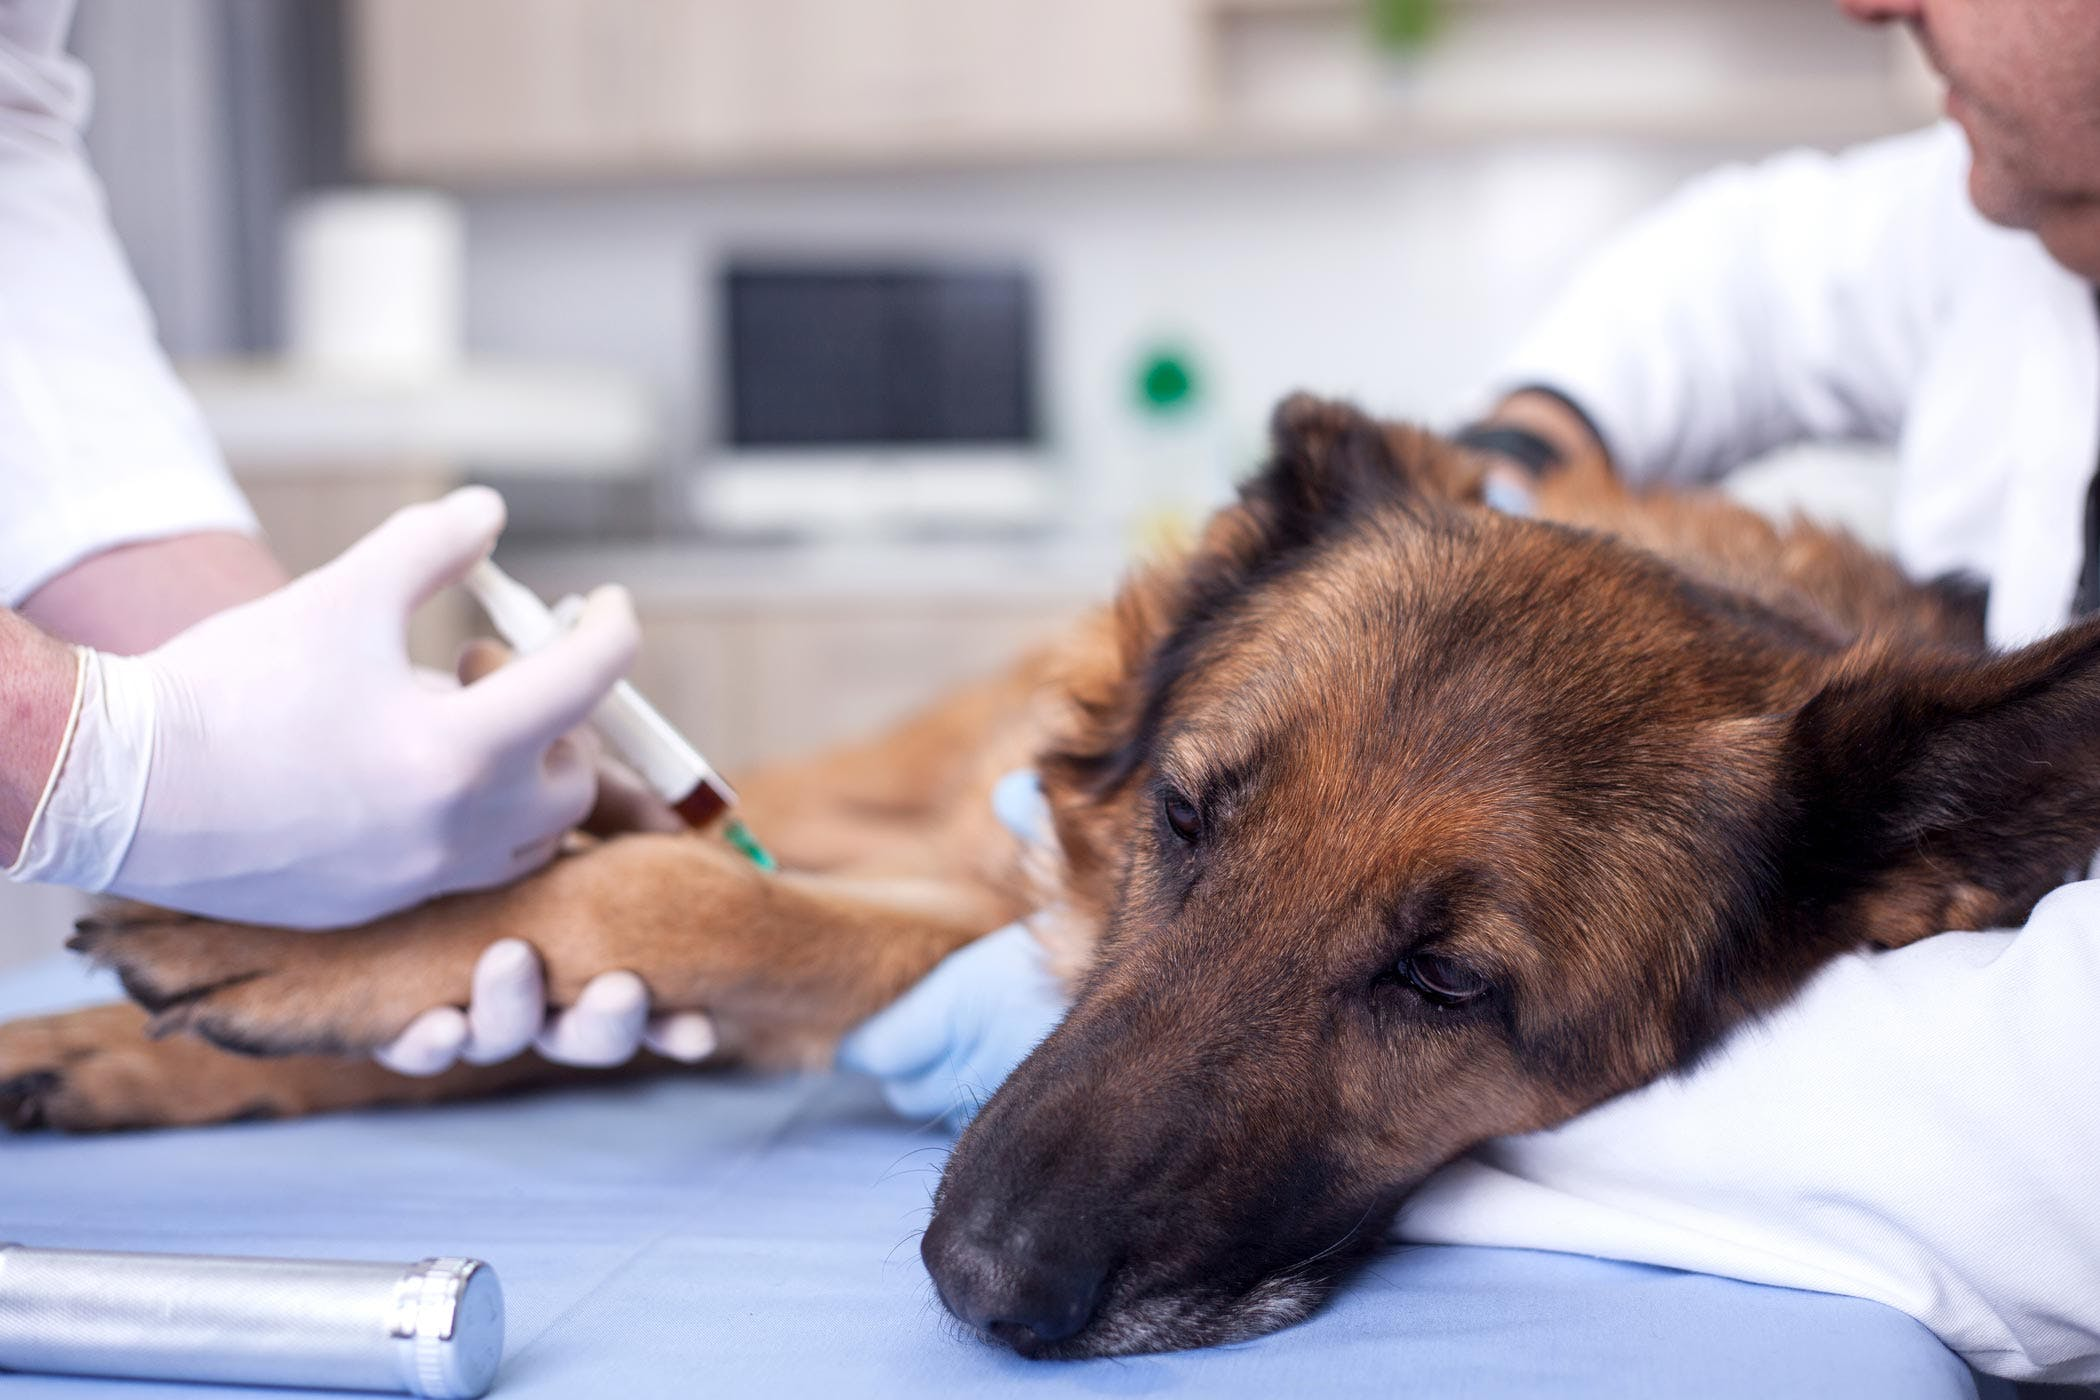 How to Treat Encephalitozoonosis in Dogs